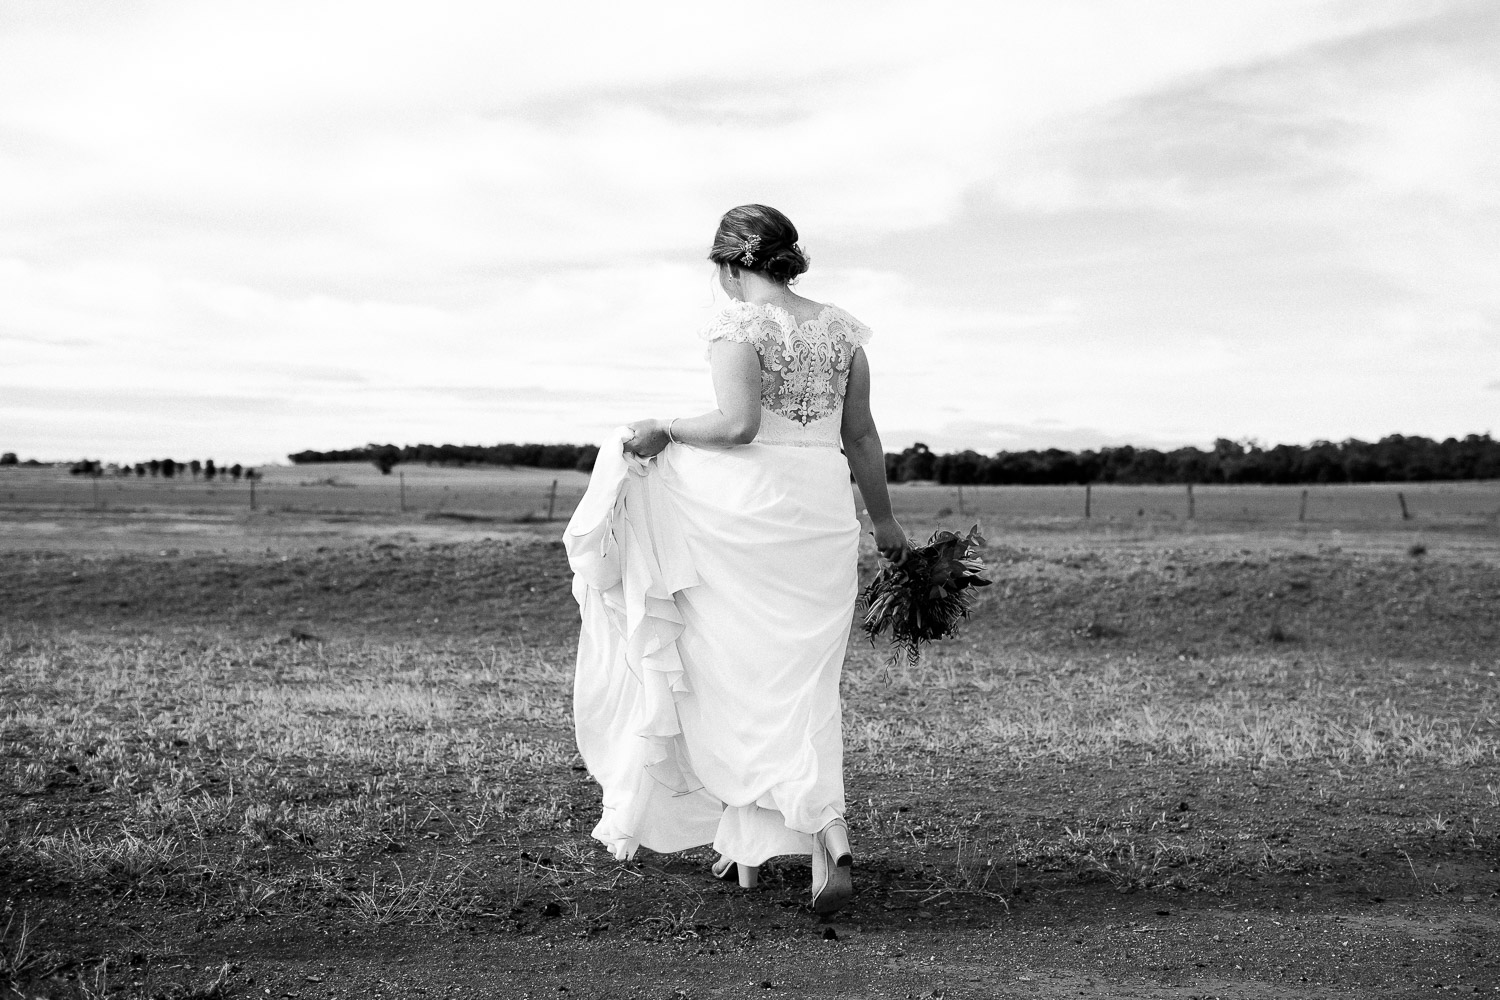 Wedding photographer wagga wagga nsw